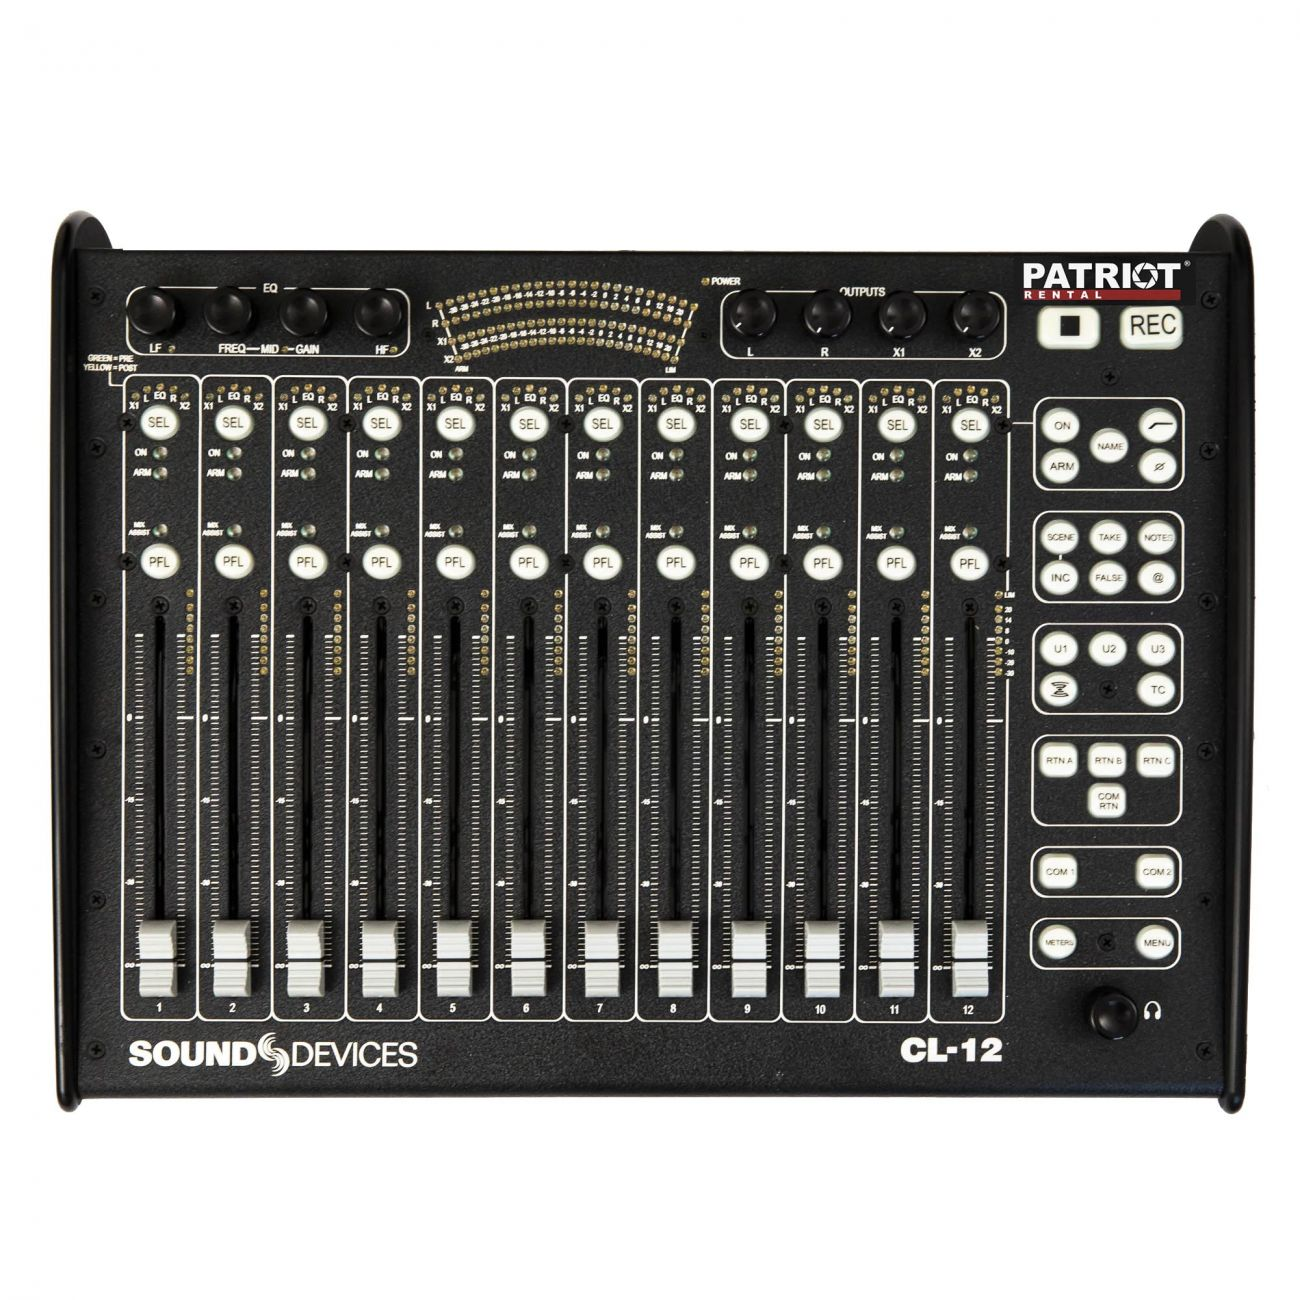 Sound Devices CL-12 Linear Fader Controller for 6-Series of Mixer/Recorders